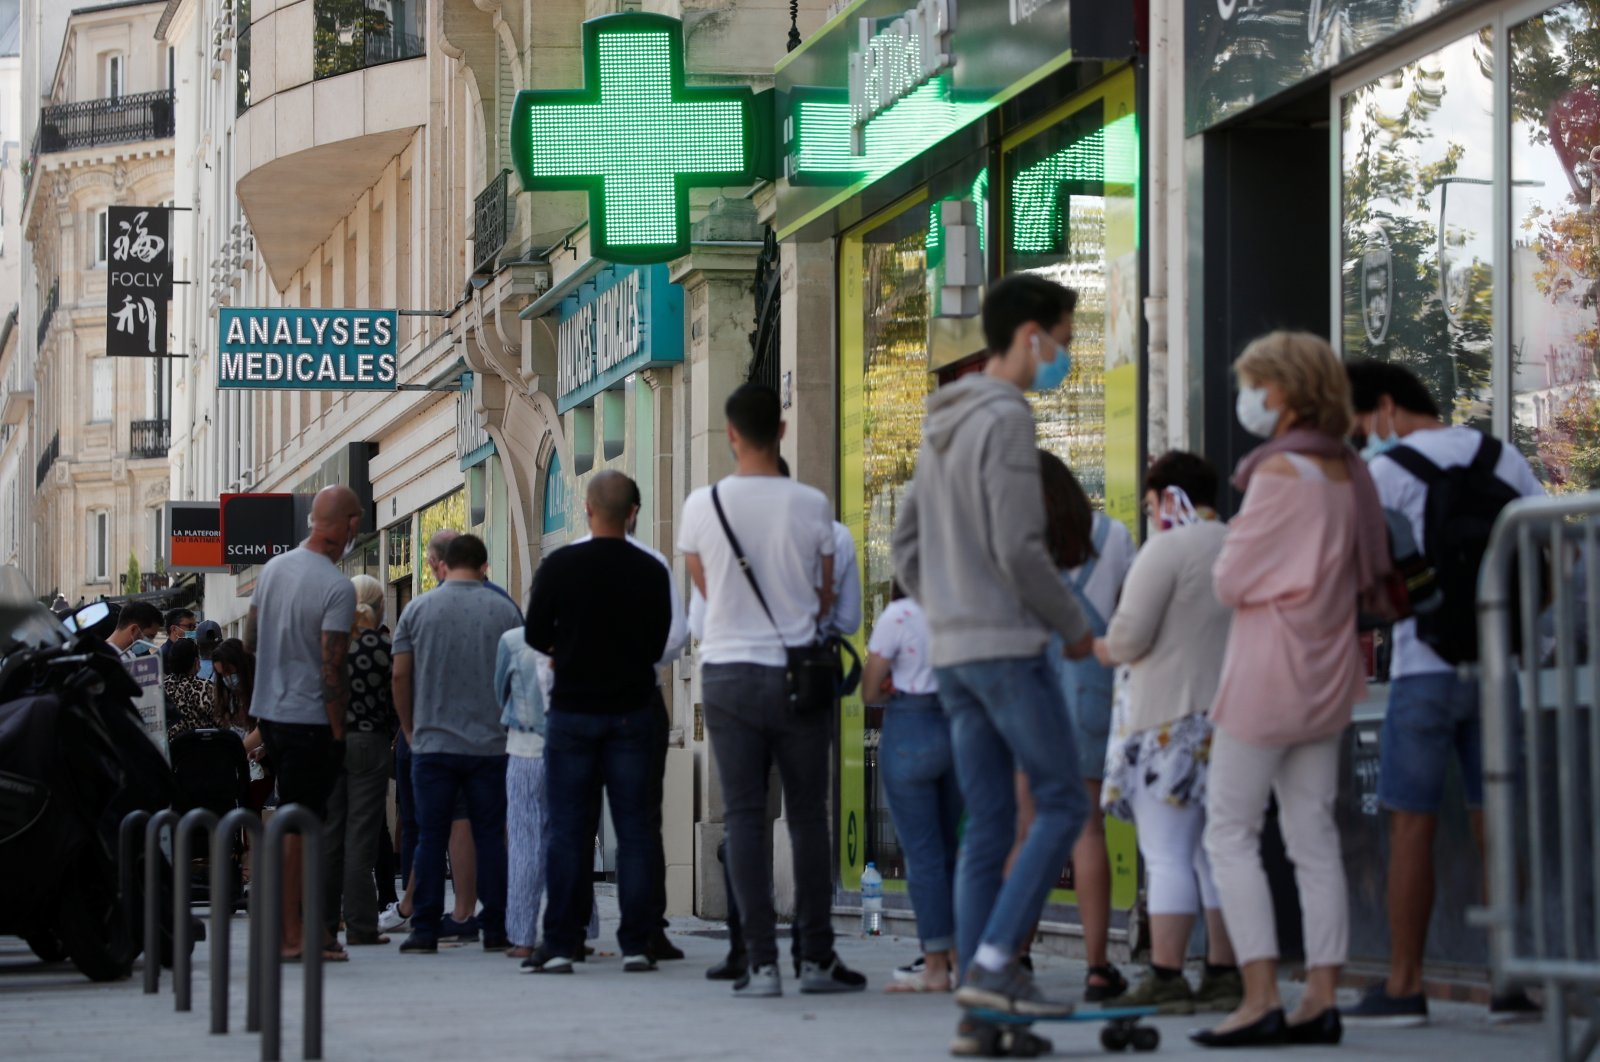 People queue to enter a laboratory to get tested for the coronavirus, Neuilly-sur-Seine, near Paris, Aug. 4, 2020. (REUTERS Photo)